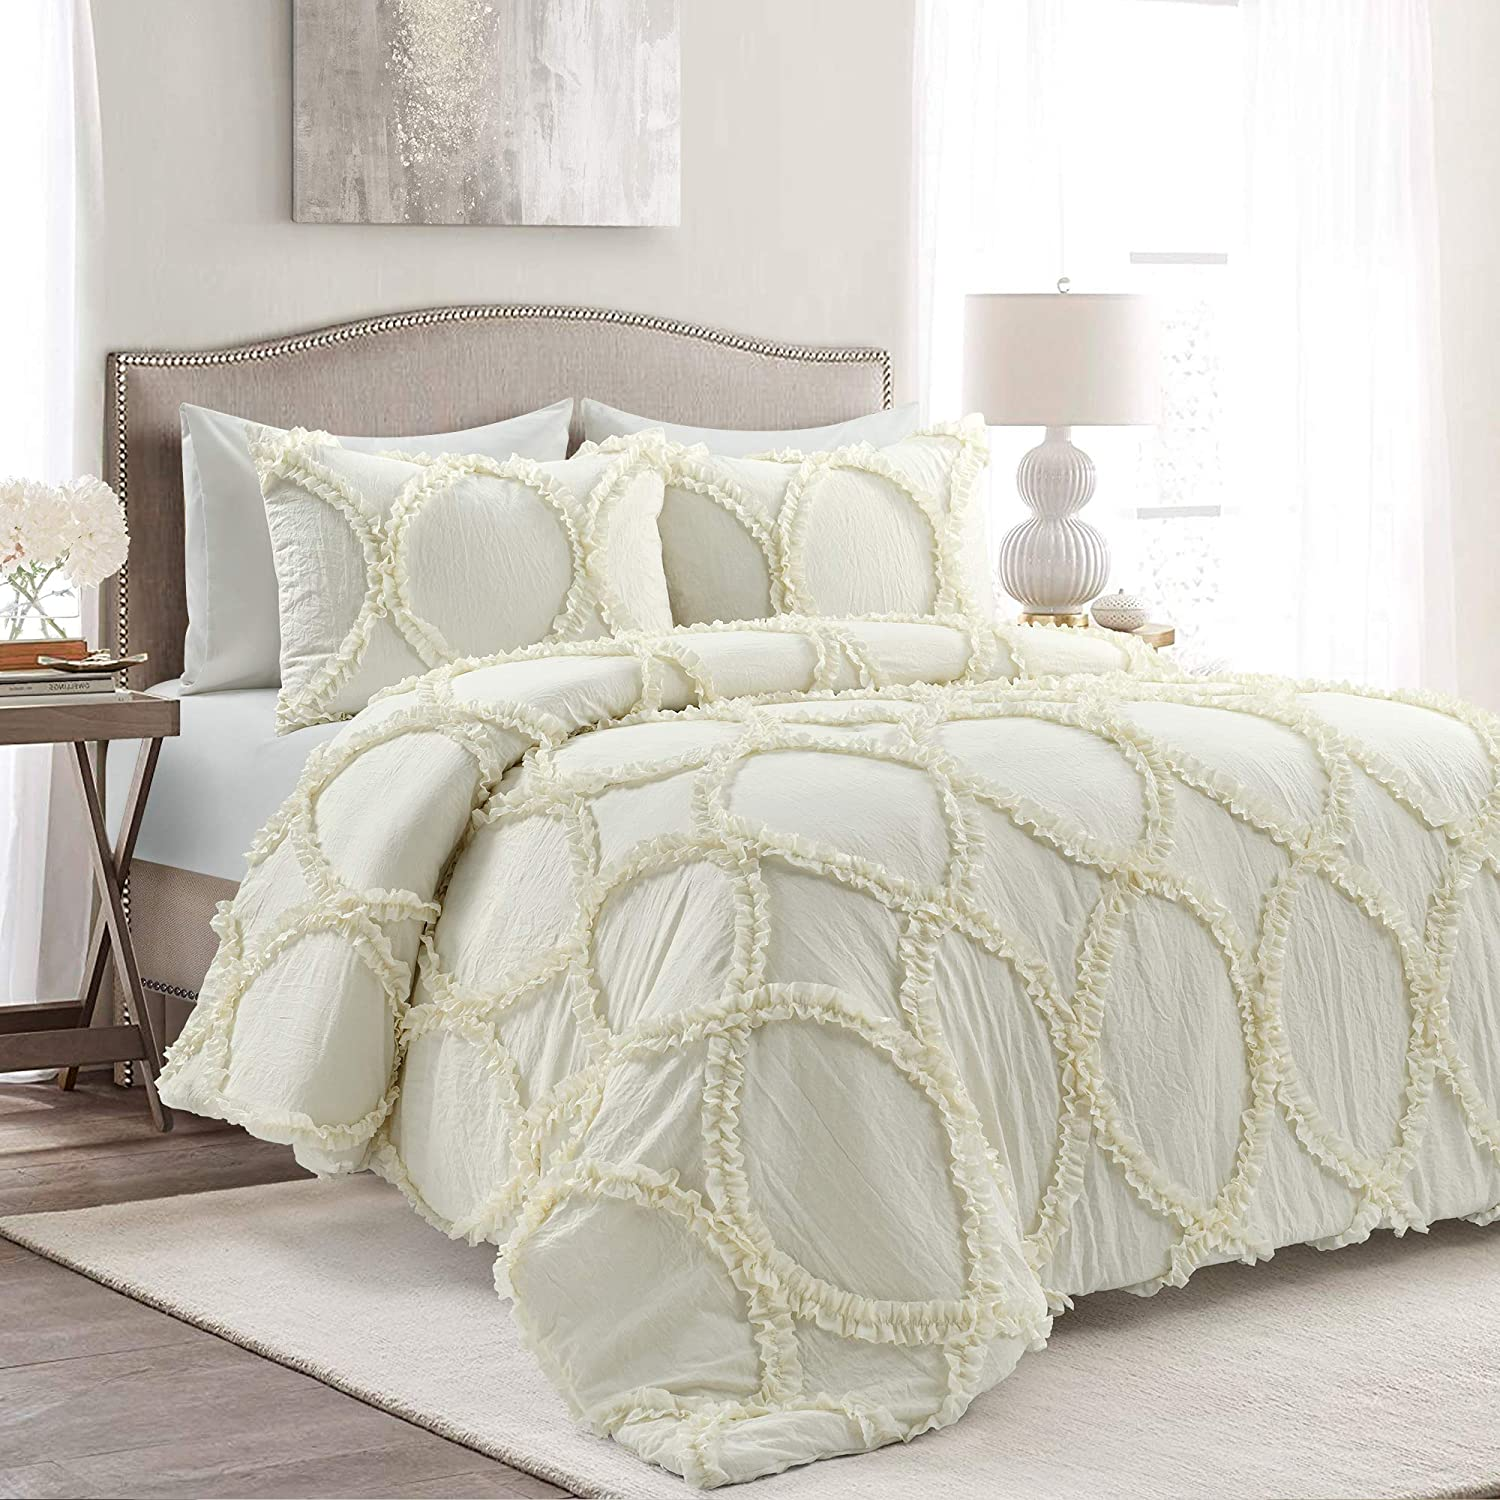 Lush Decor Ivory Riviera 3-Piece Comforter Set, Luxury Bedding (King)